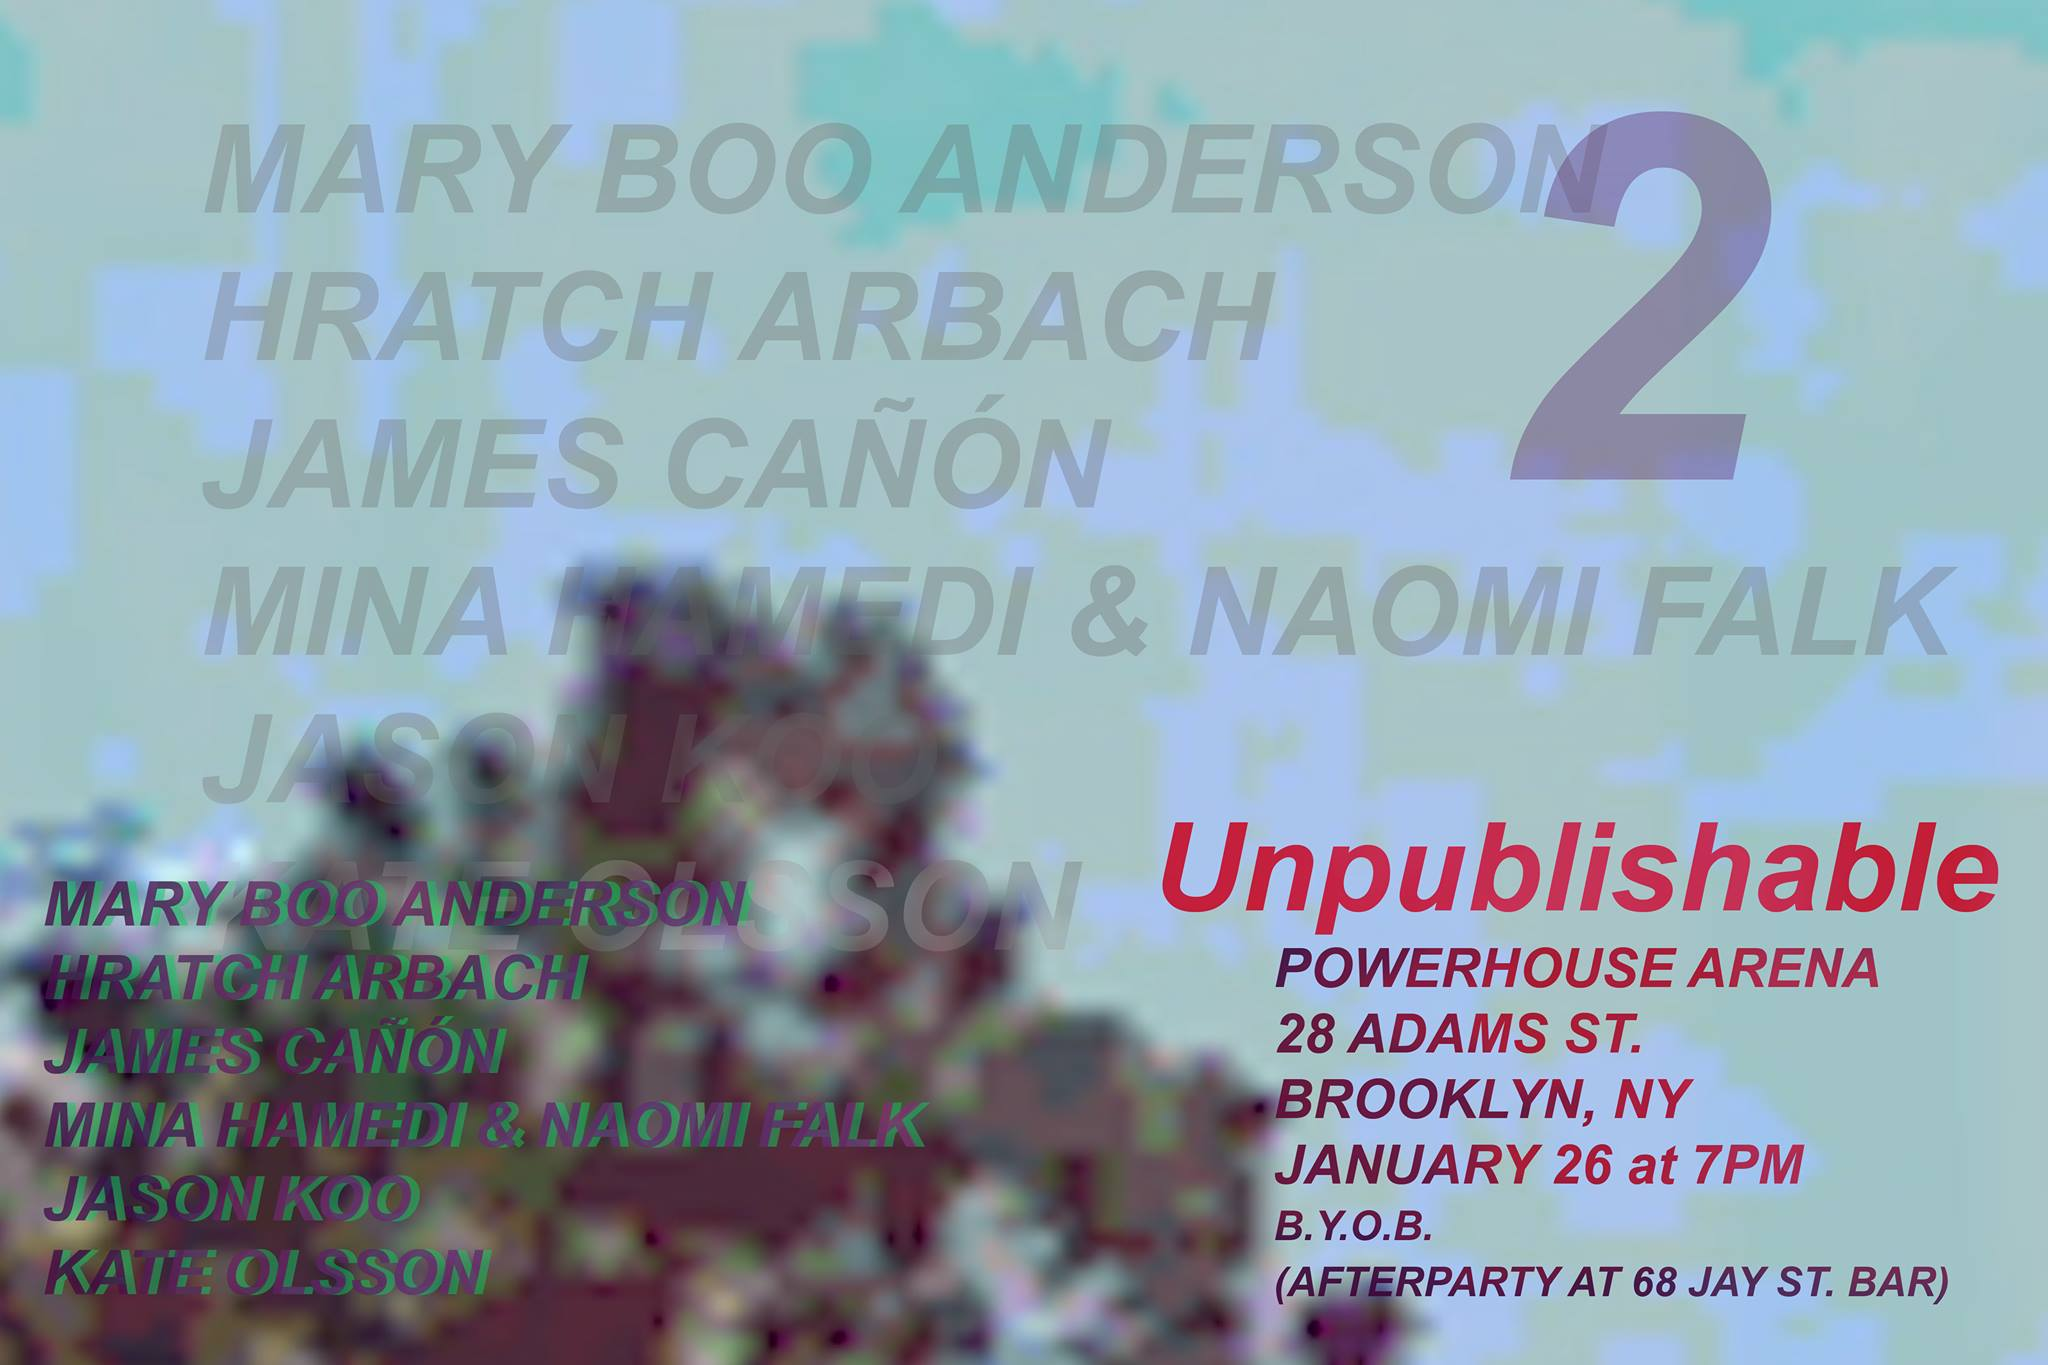 Reading: Unpublishable featuring Mary Boo Anderson, Hratch Arbach, James Cañón, Mina Hamedi & Naomi Falk, Jason Koo, Kate Olsson